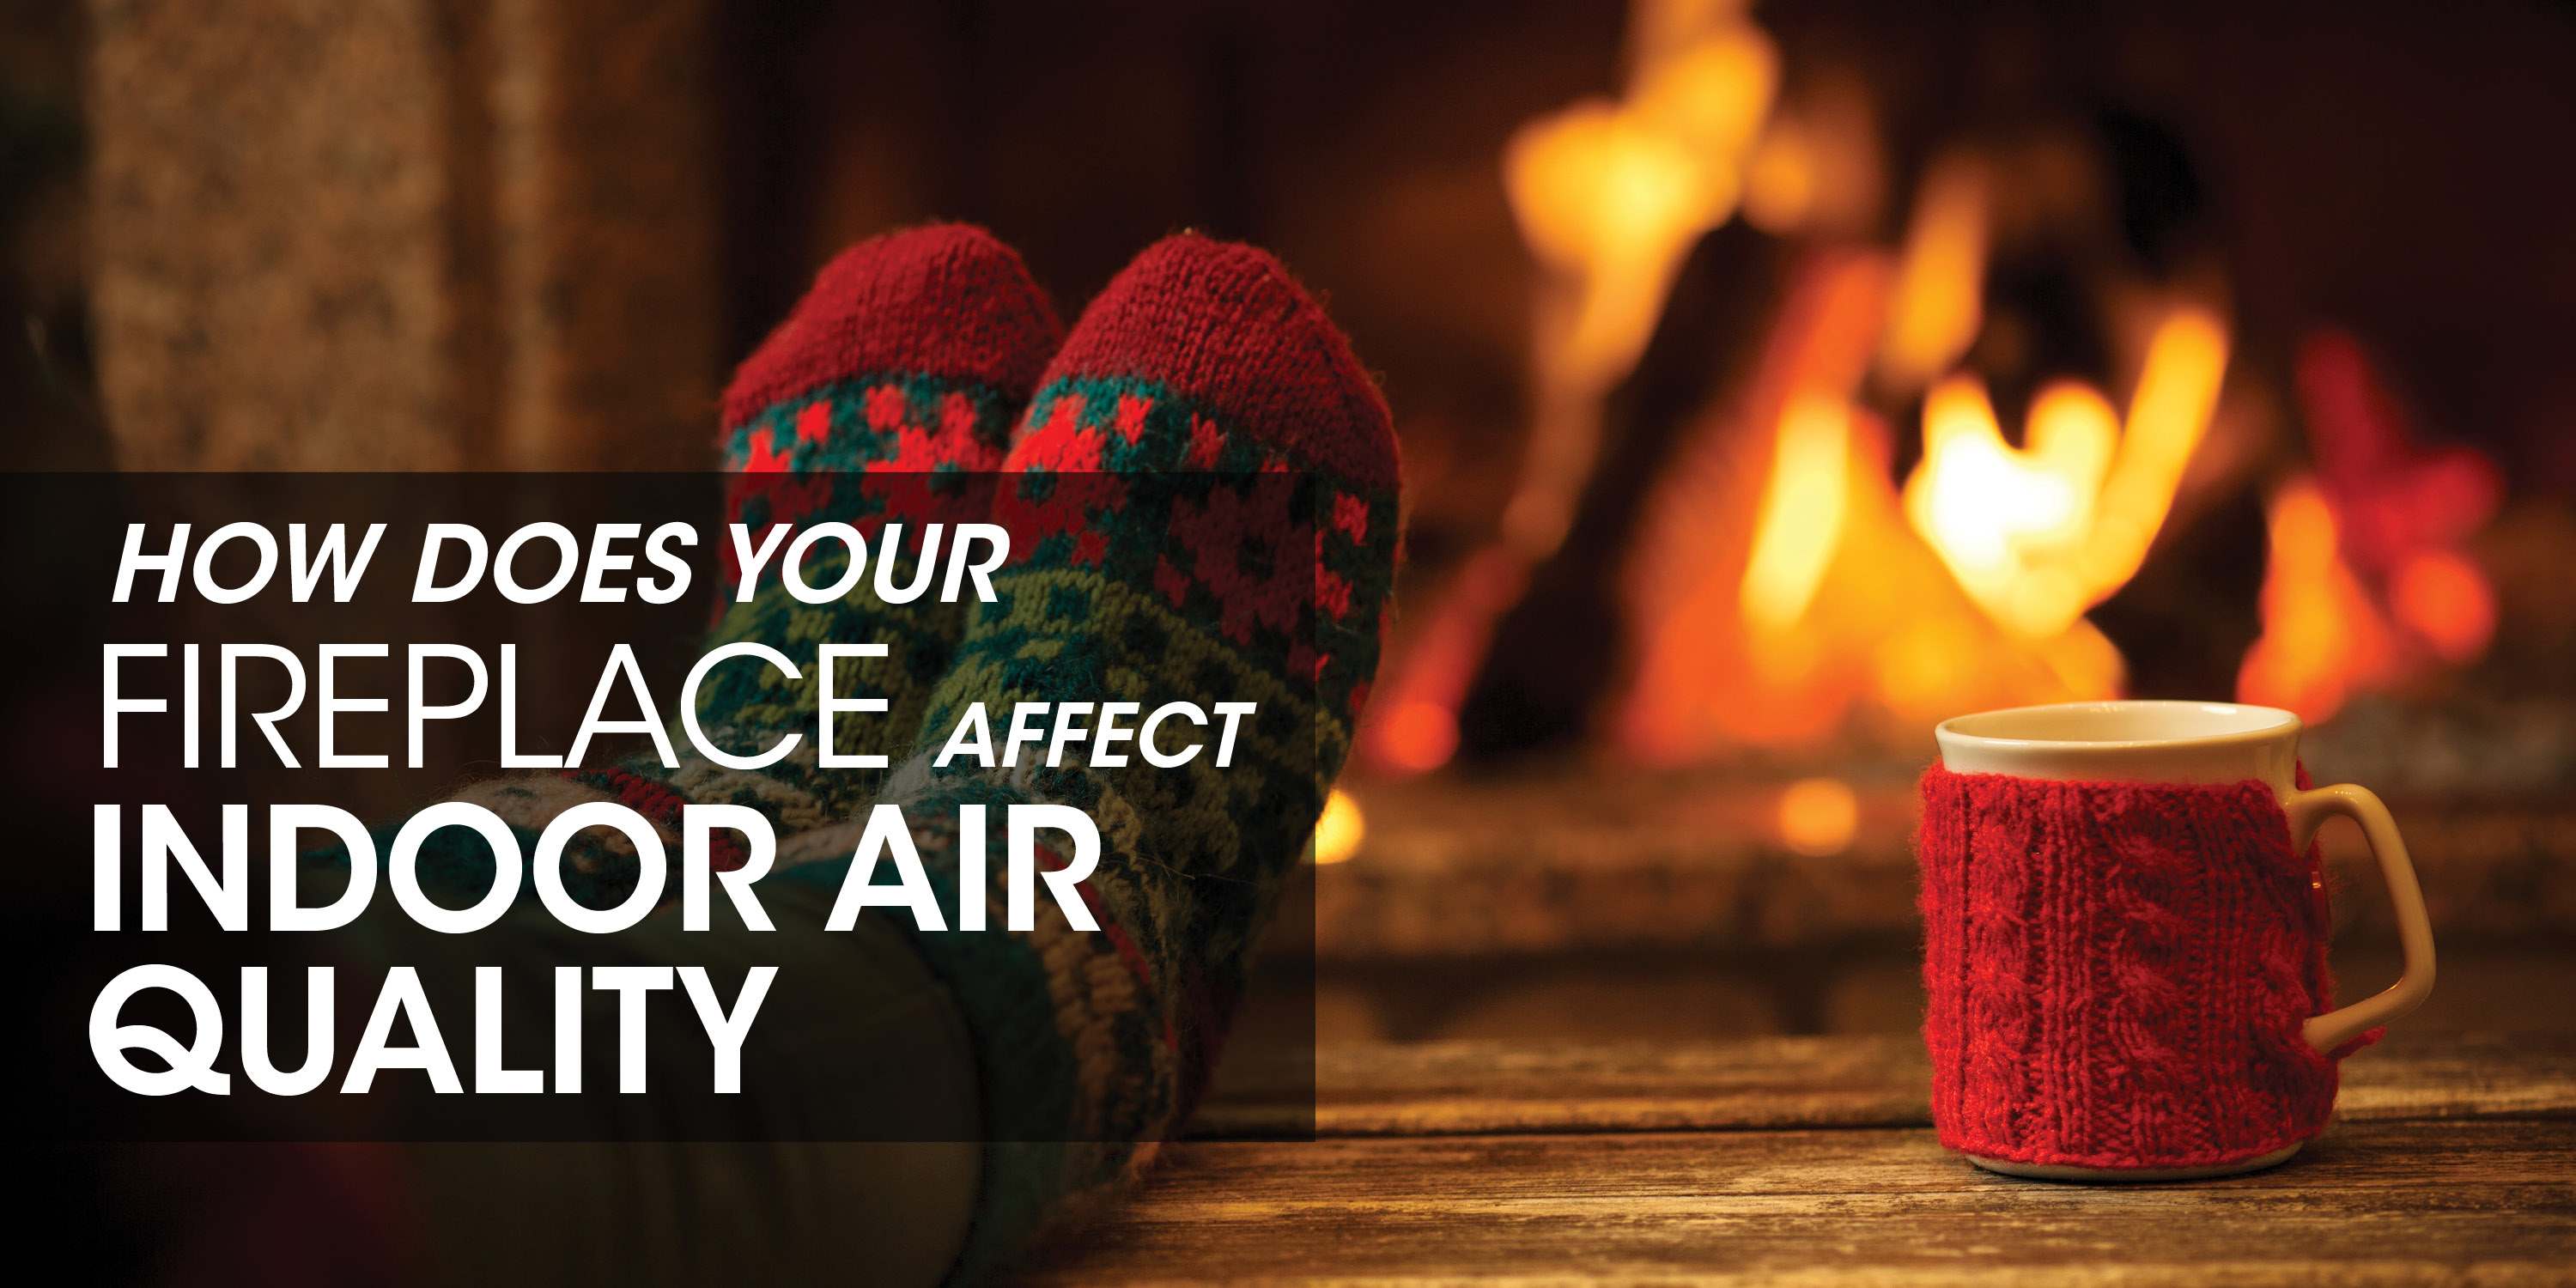 how does your fireplace affect indoor air quality